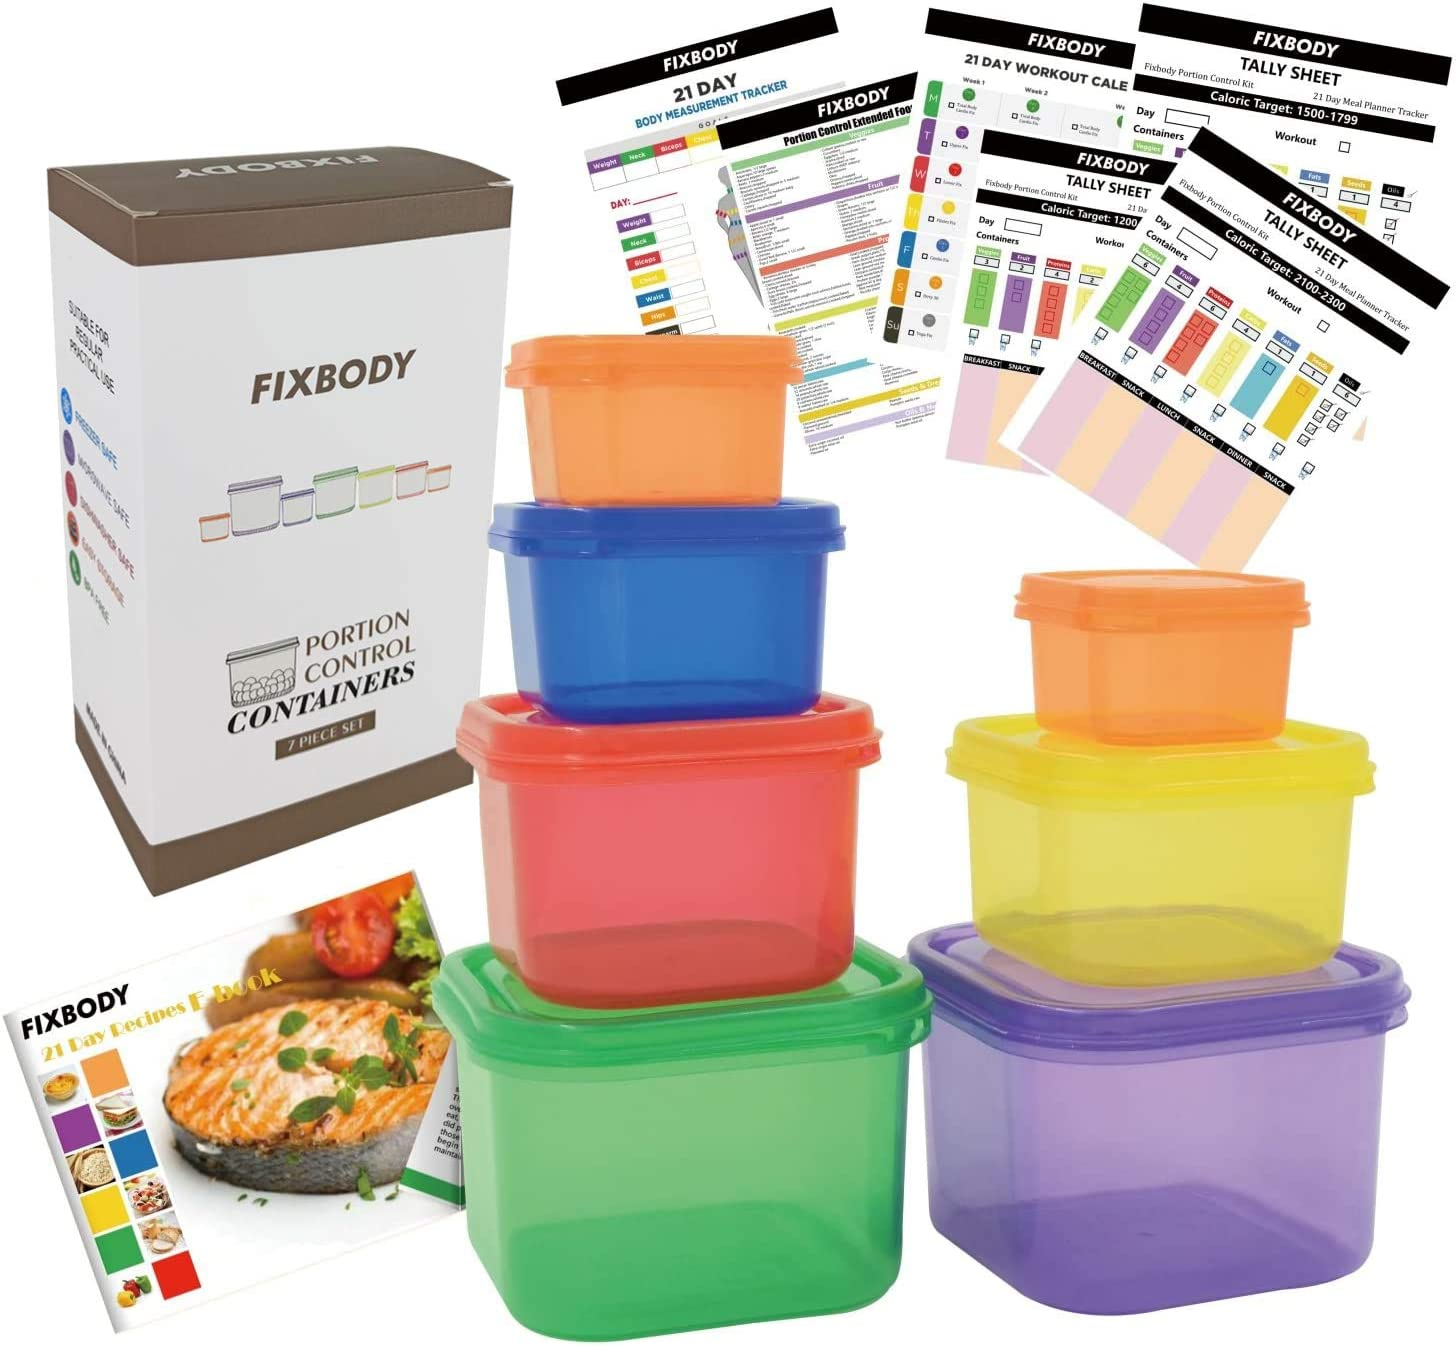 which diet uses color coded containers